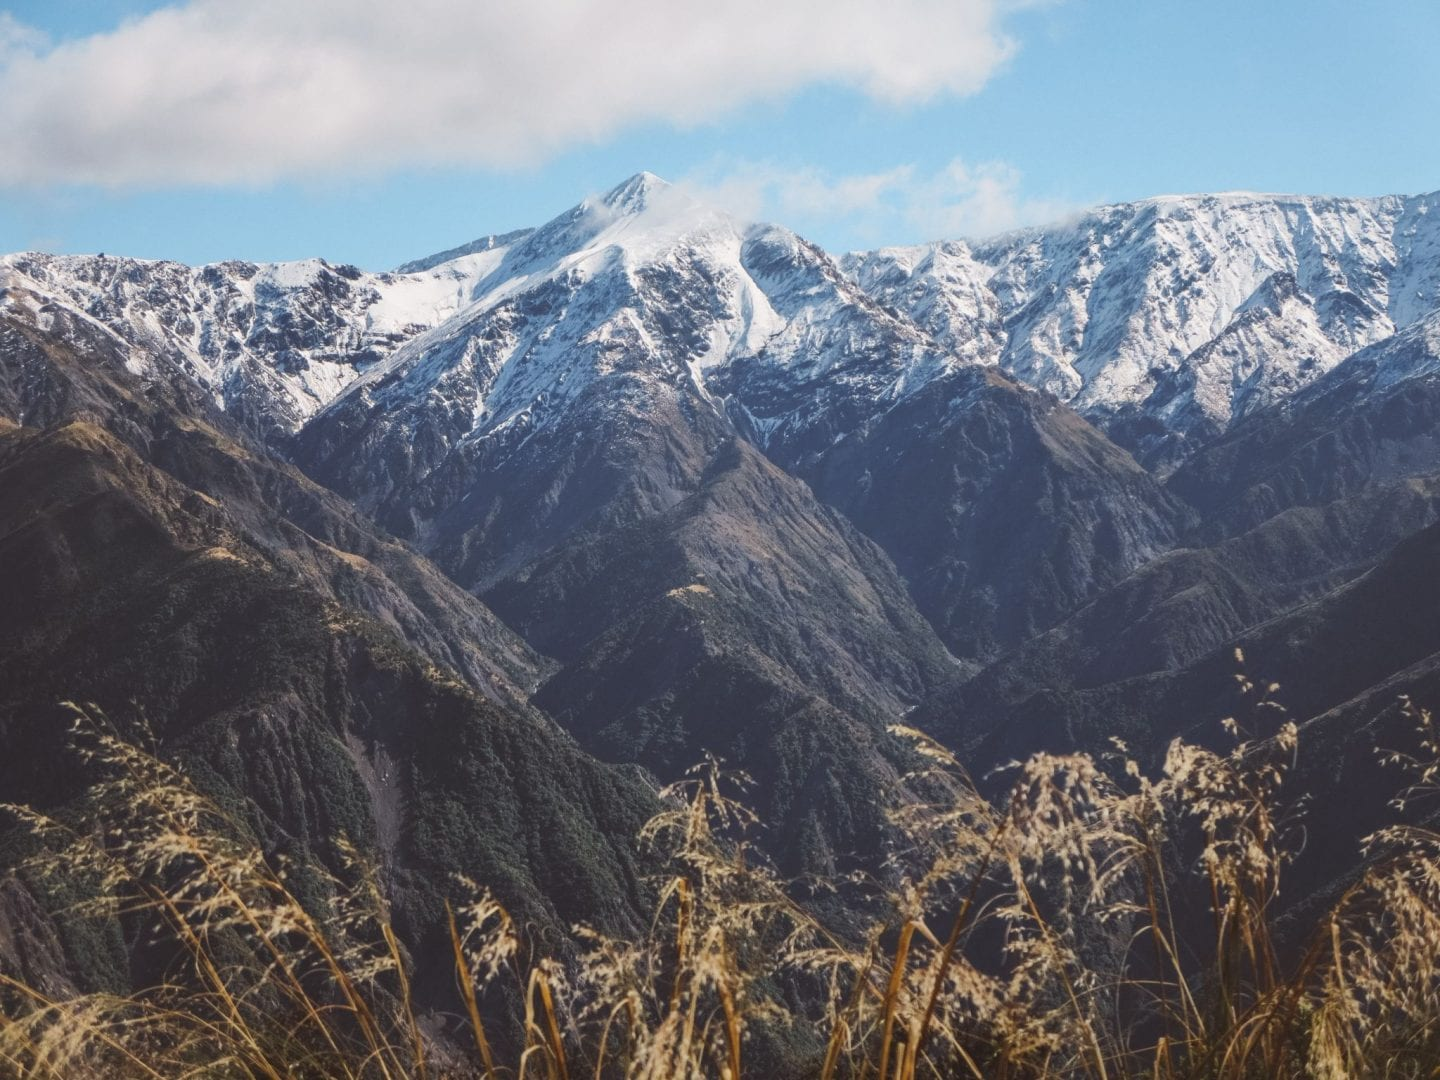 Backpacking New Zealand's South Island